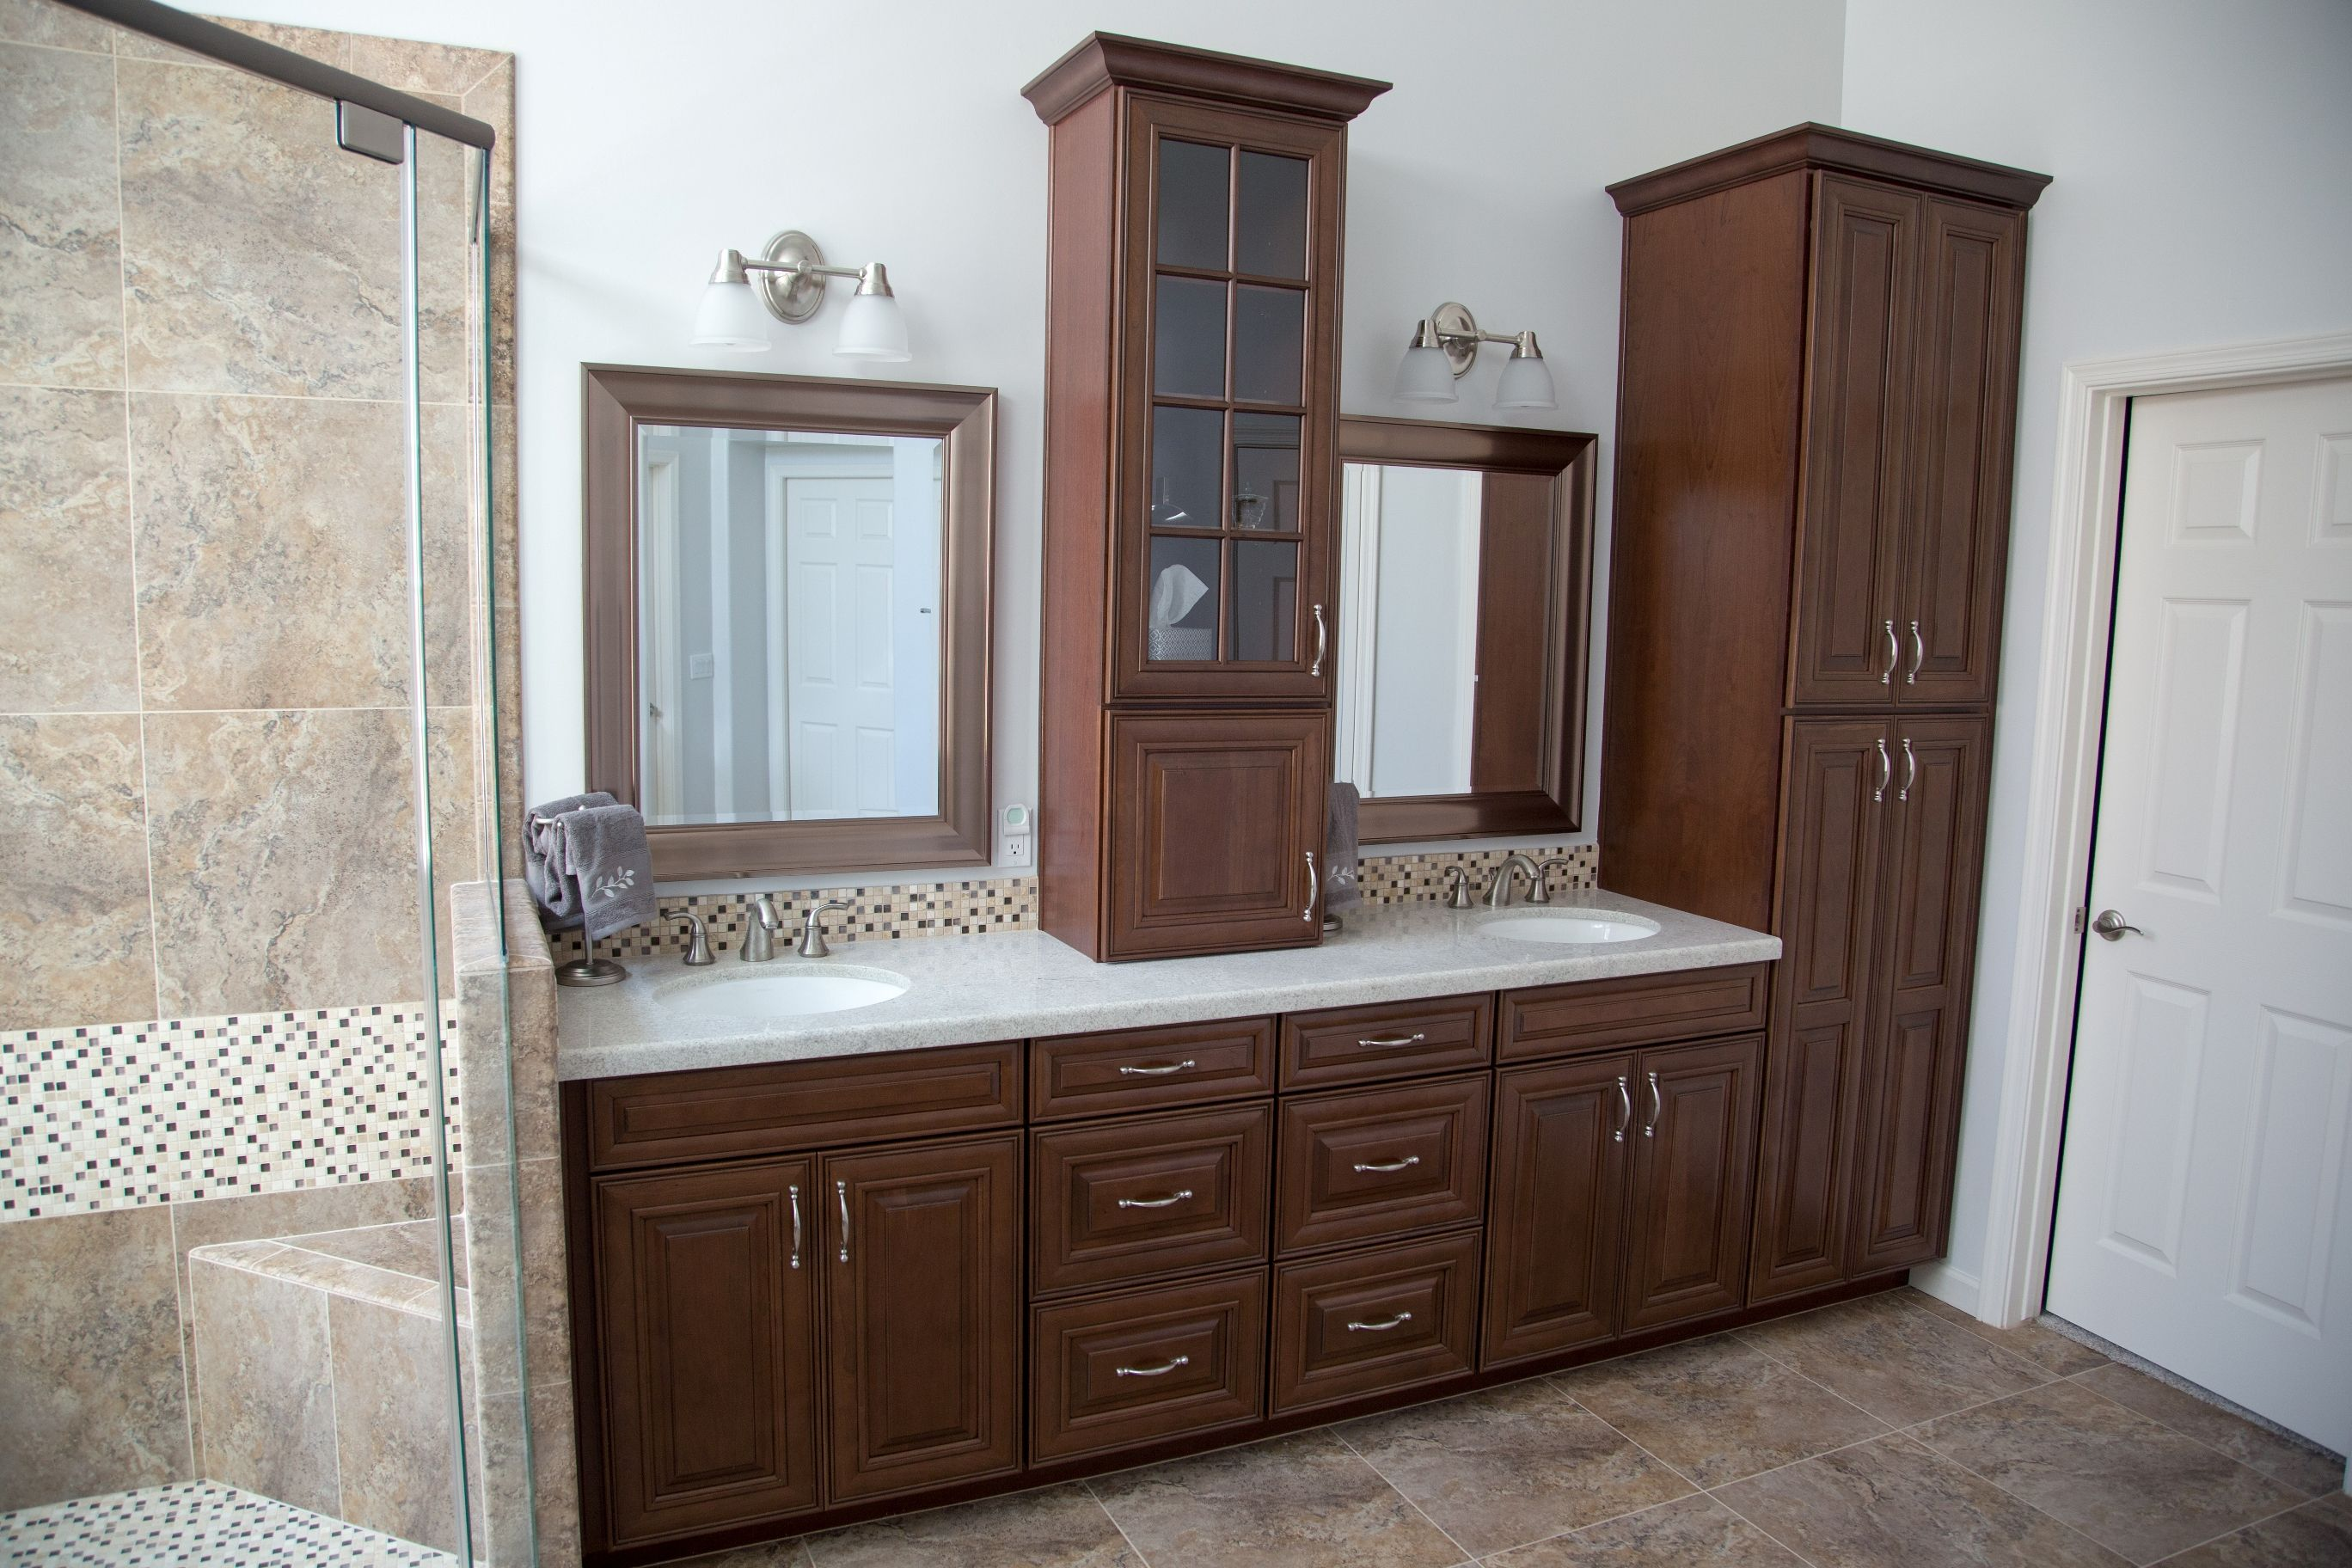 Be Sure To Speak With Our Expert Design Team About Incorporating Plenty Of Storage Options In Your Bathrooms Remodel Bathroom Remodel Gallery Bathroom Design [ jpg ]